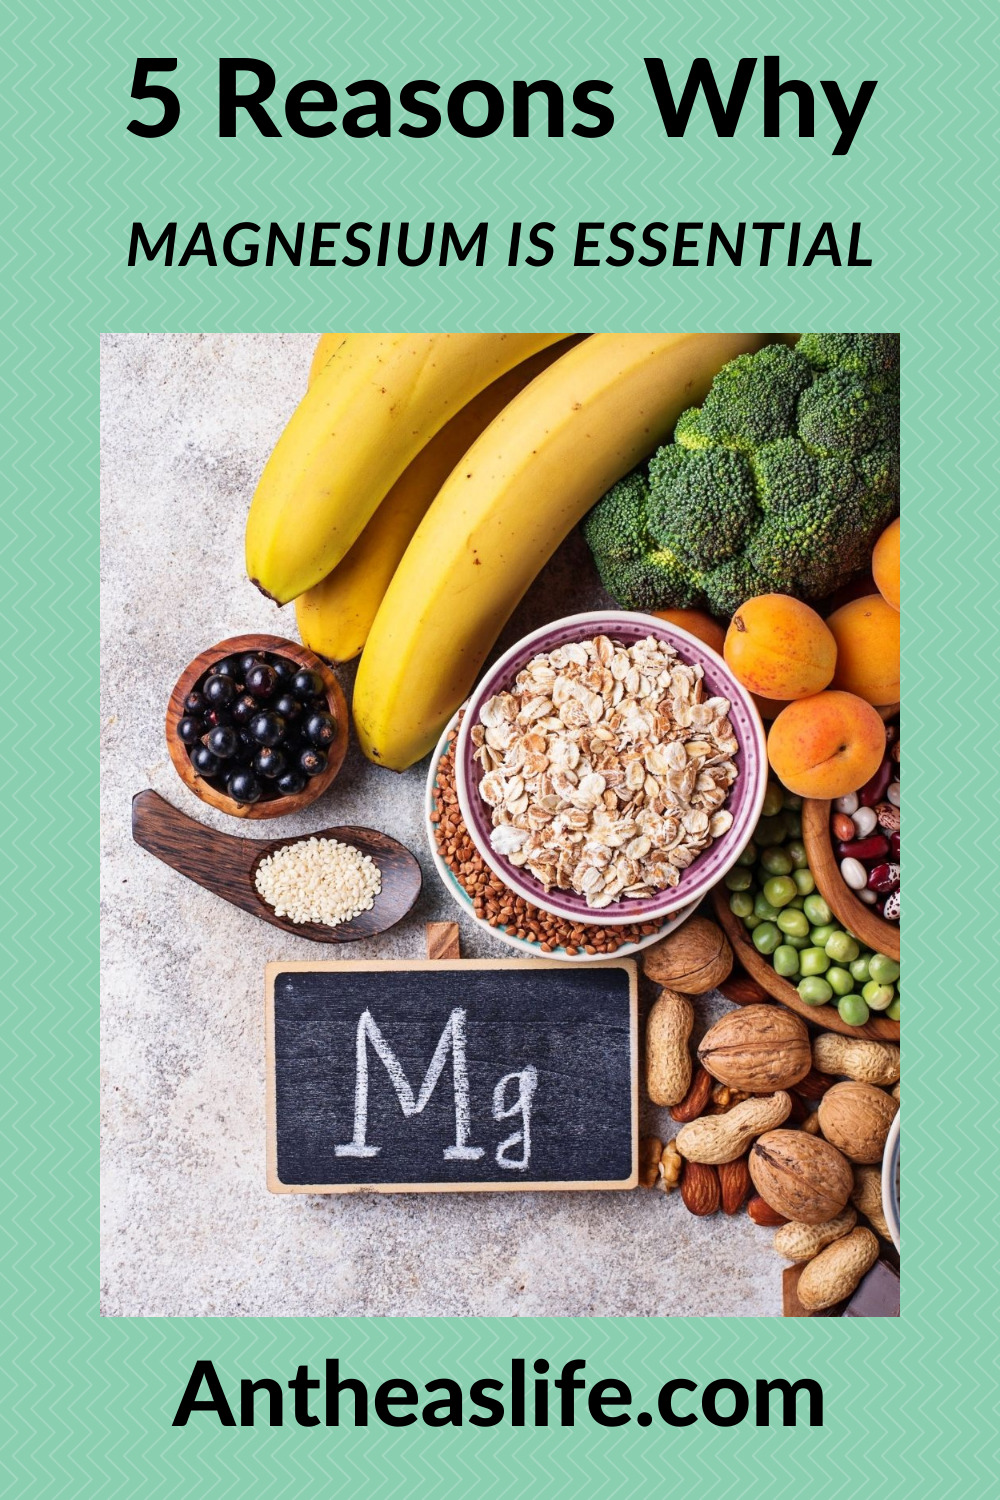 5-Reaons-why-magnesium-is-essential